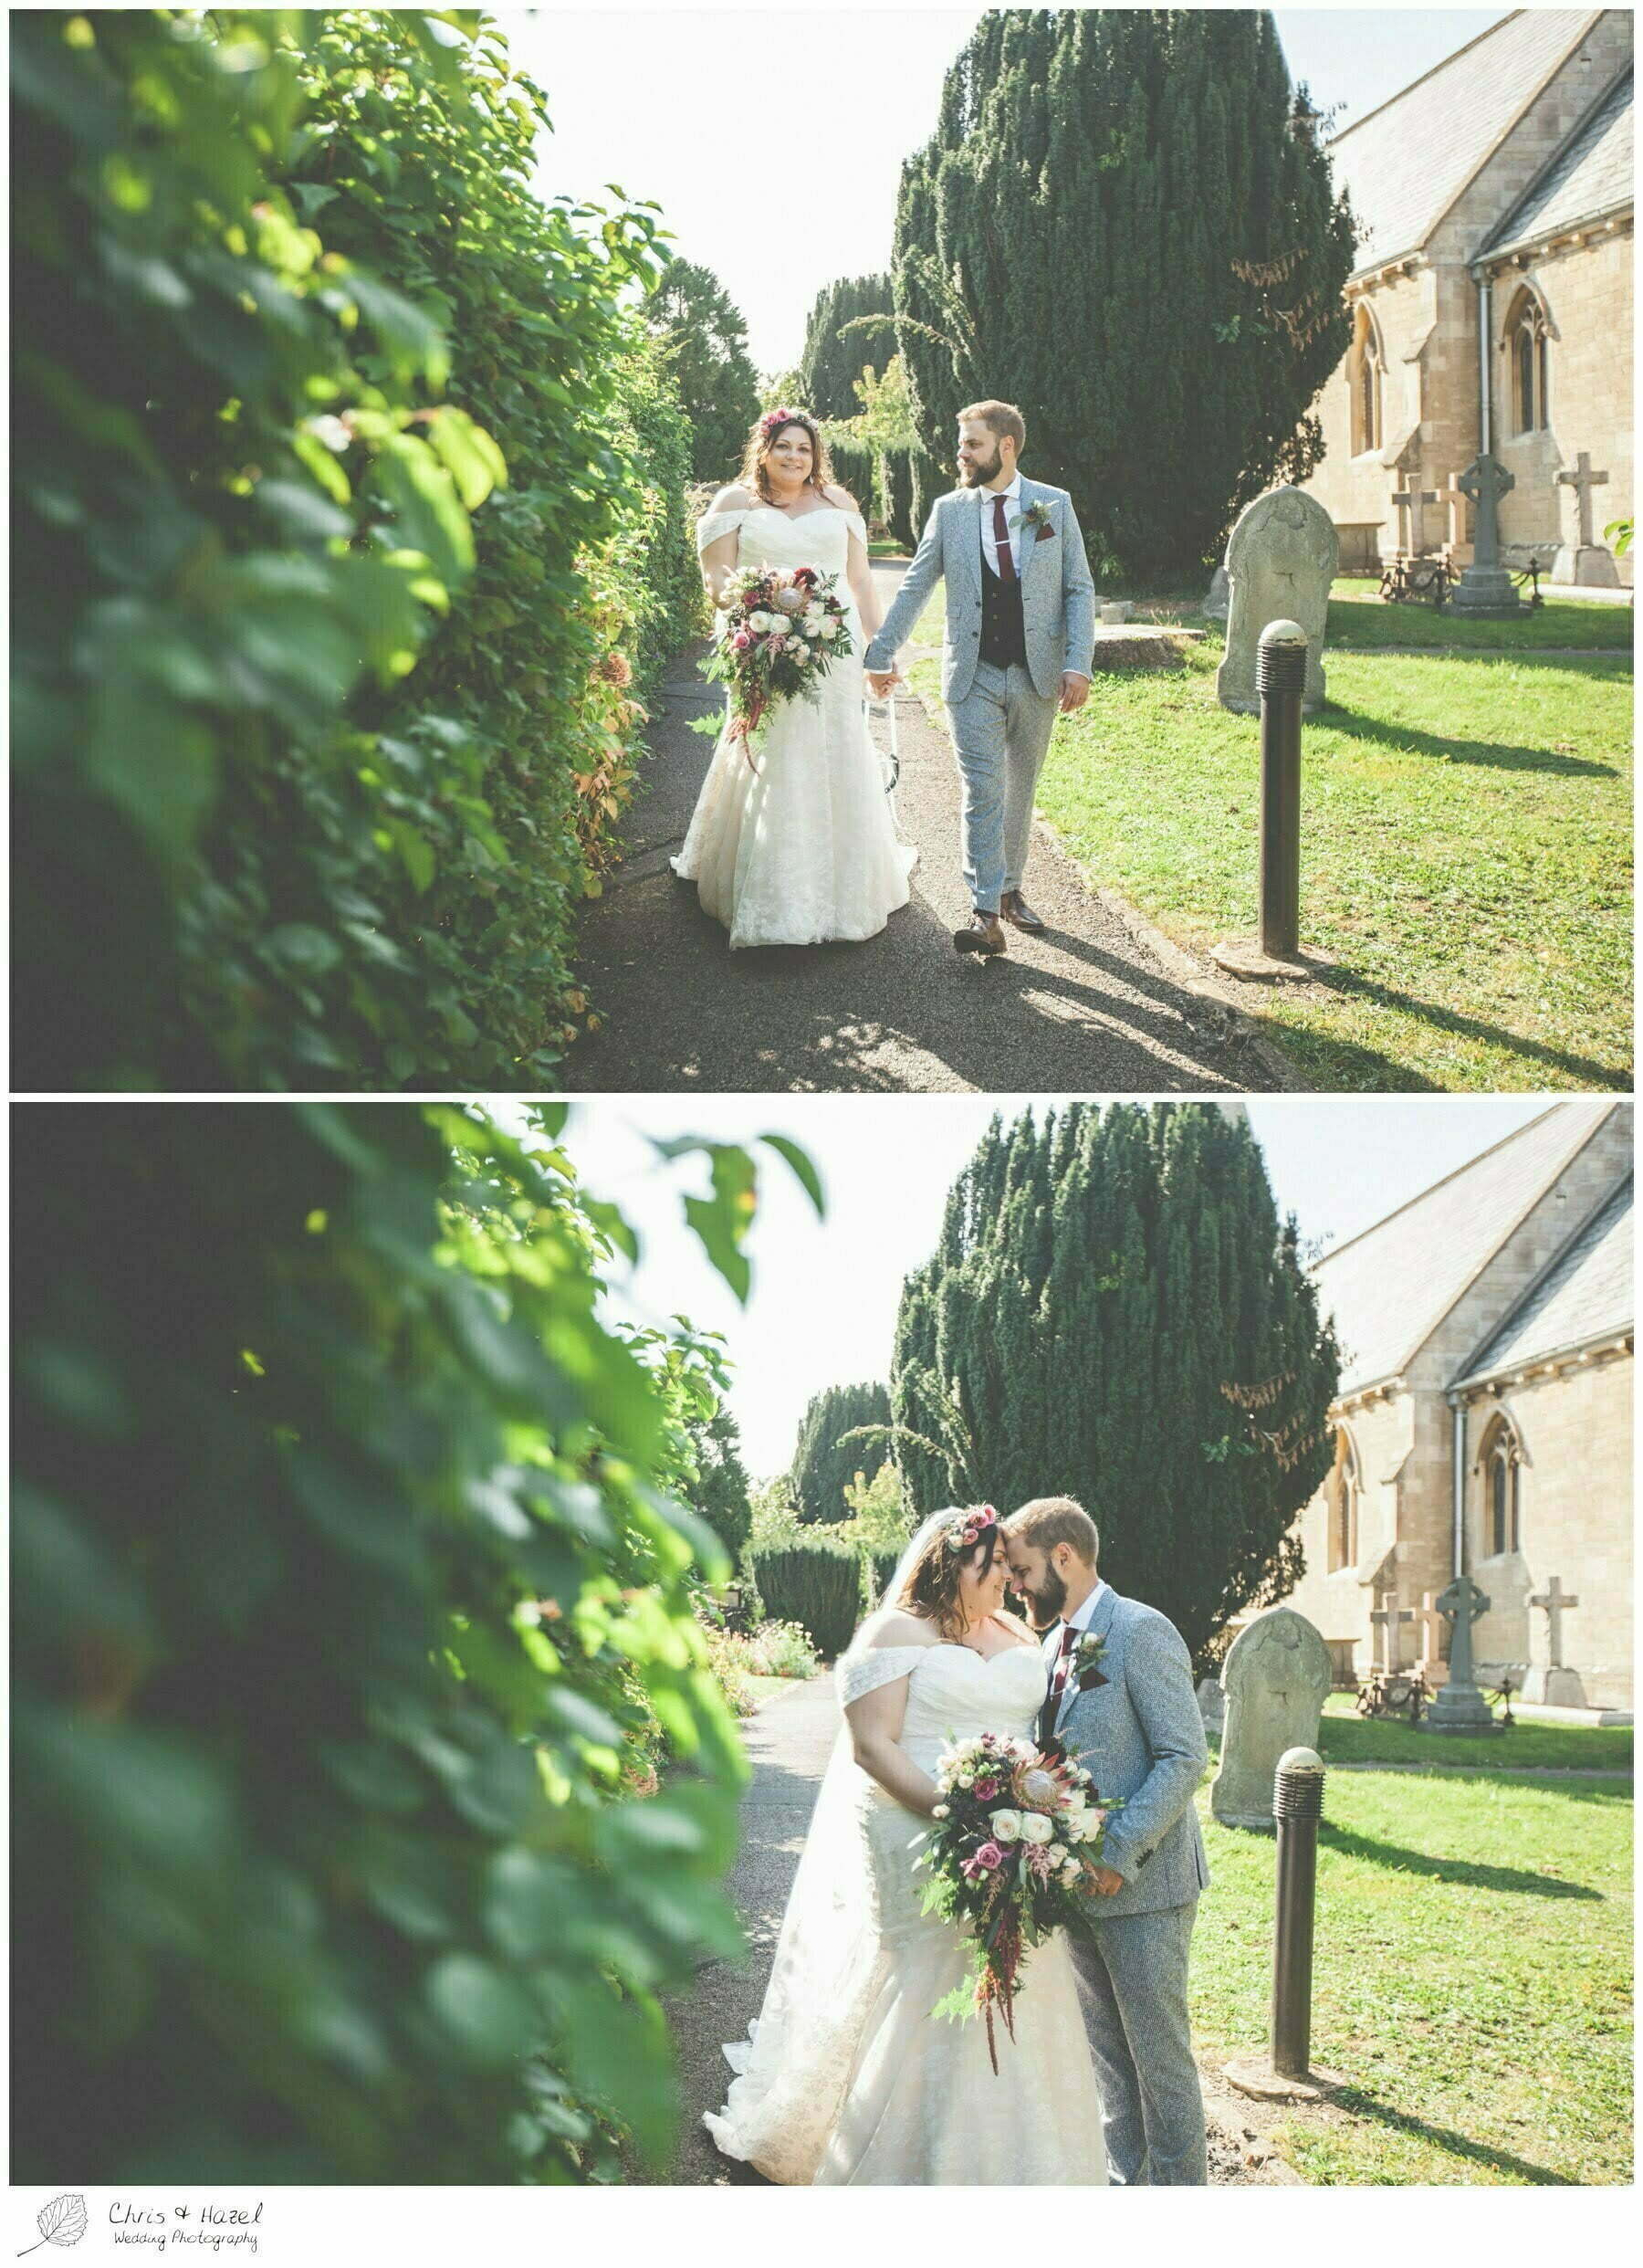 Bride and groom portraits photographs outside the church, Hilperton Church, St Michael & All Angels' Church, Wedding Photography, Wiltshire Wedding Photographer Trowbridge, Chris and Hazel Wedding Photography